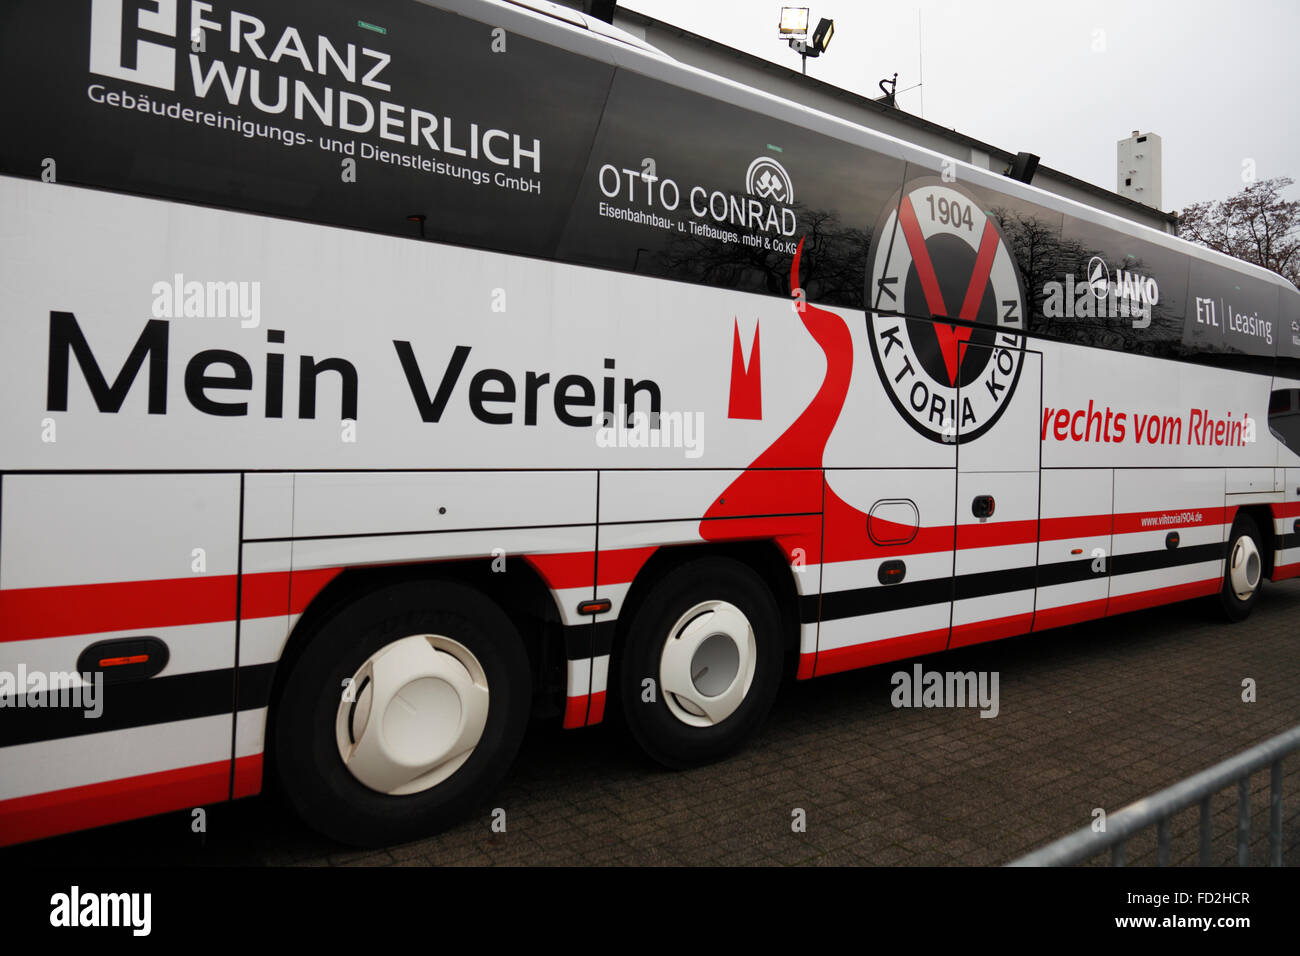 sports, football, Regional League West, 2015/2016, Rot Weiss Oberhausen versus FC Viktoria Koeln 1904 0:3, Stadium - Stock Image